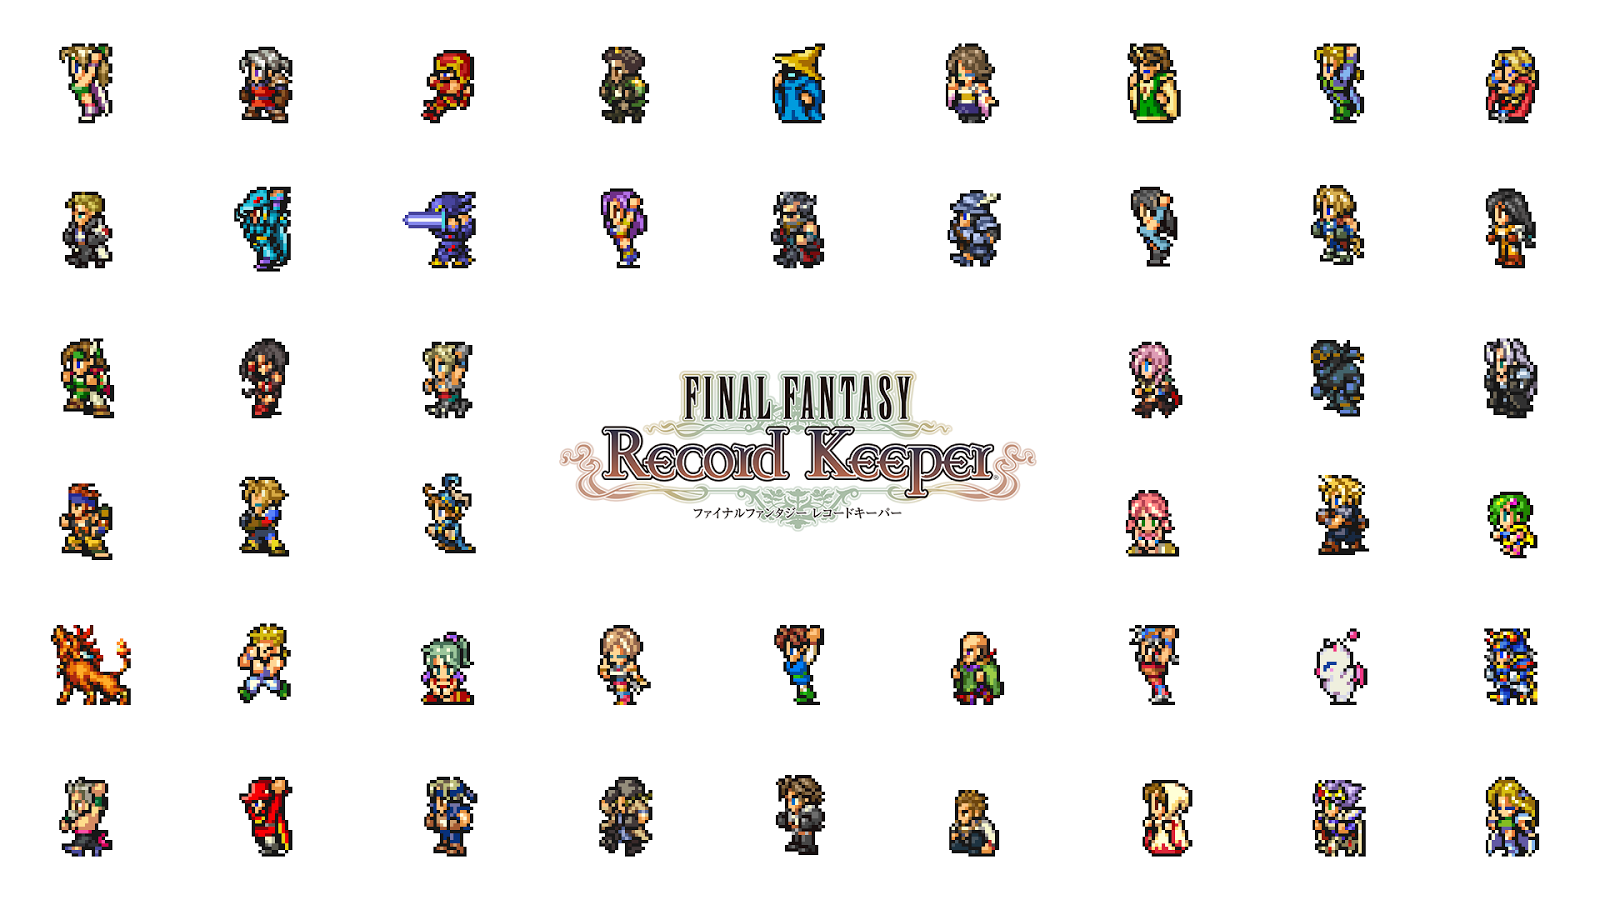 FINAL FANTASY Record Keeper Screenshot 6